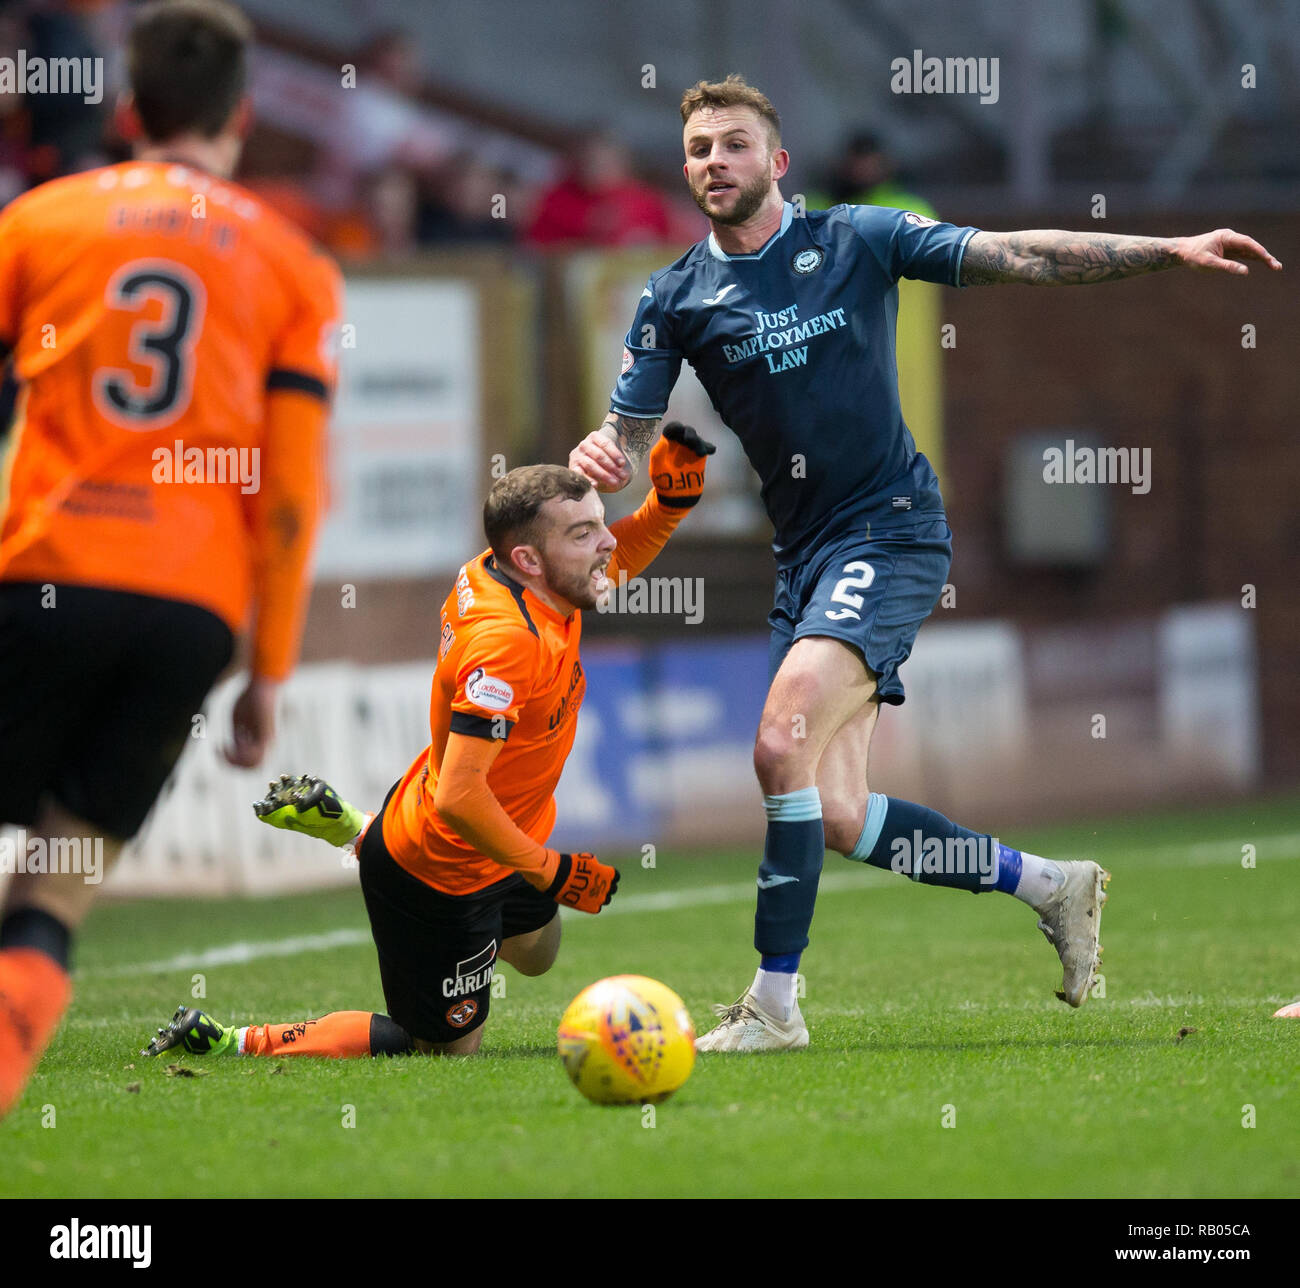 Tannadice Park, Dundee, UK. 5th Jan, 2019. Scottish Championship football, Dundee United versus Partick Thistle; Paul McMullan of Dundee United is tackled by Christie Elliott of Patrick Thistle Credit: Action Plus Sports/Alamy Live News - Stock Image